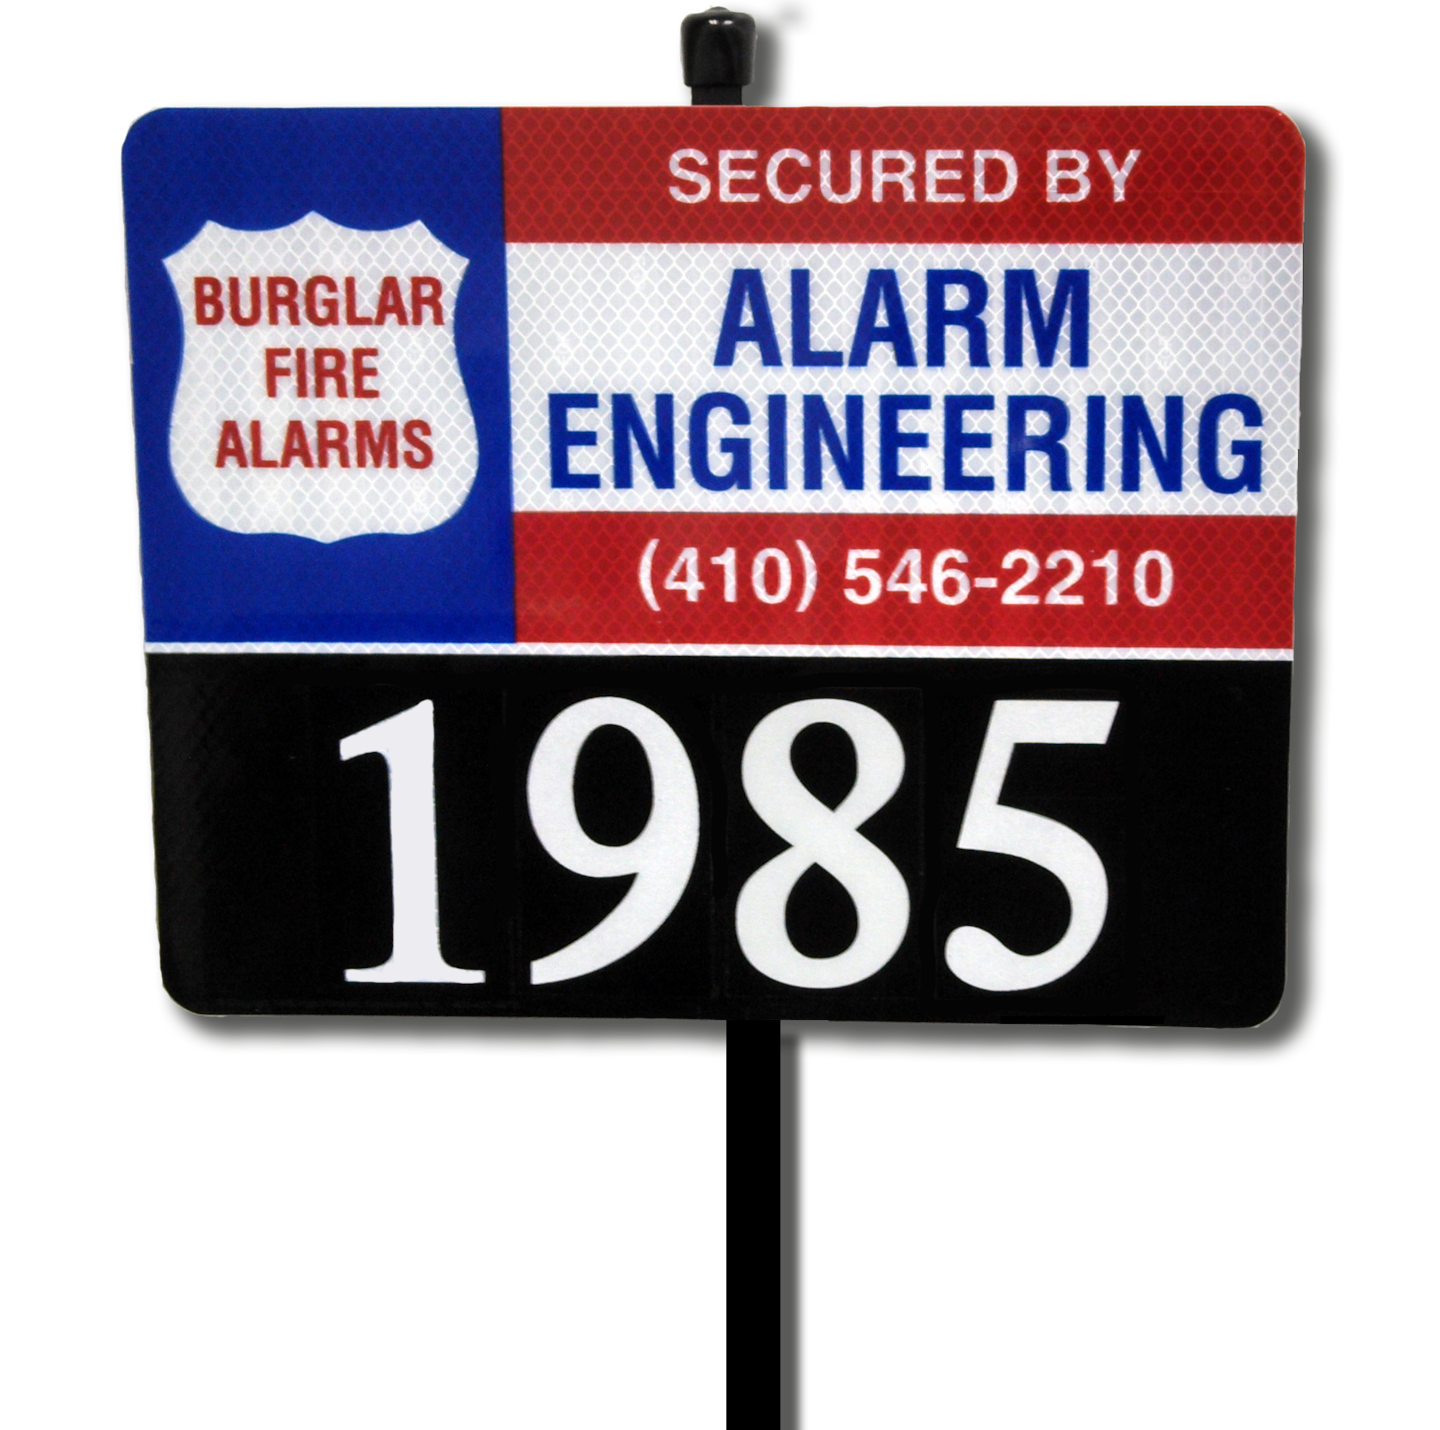 ALARM ENGINEERING, Inc.